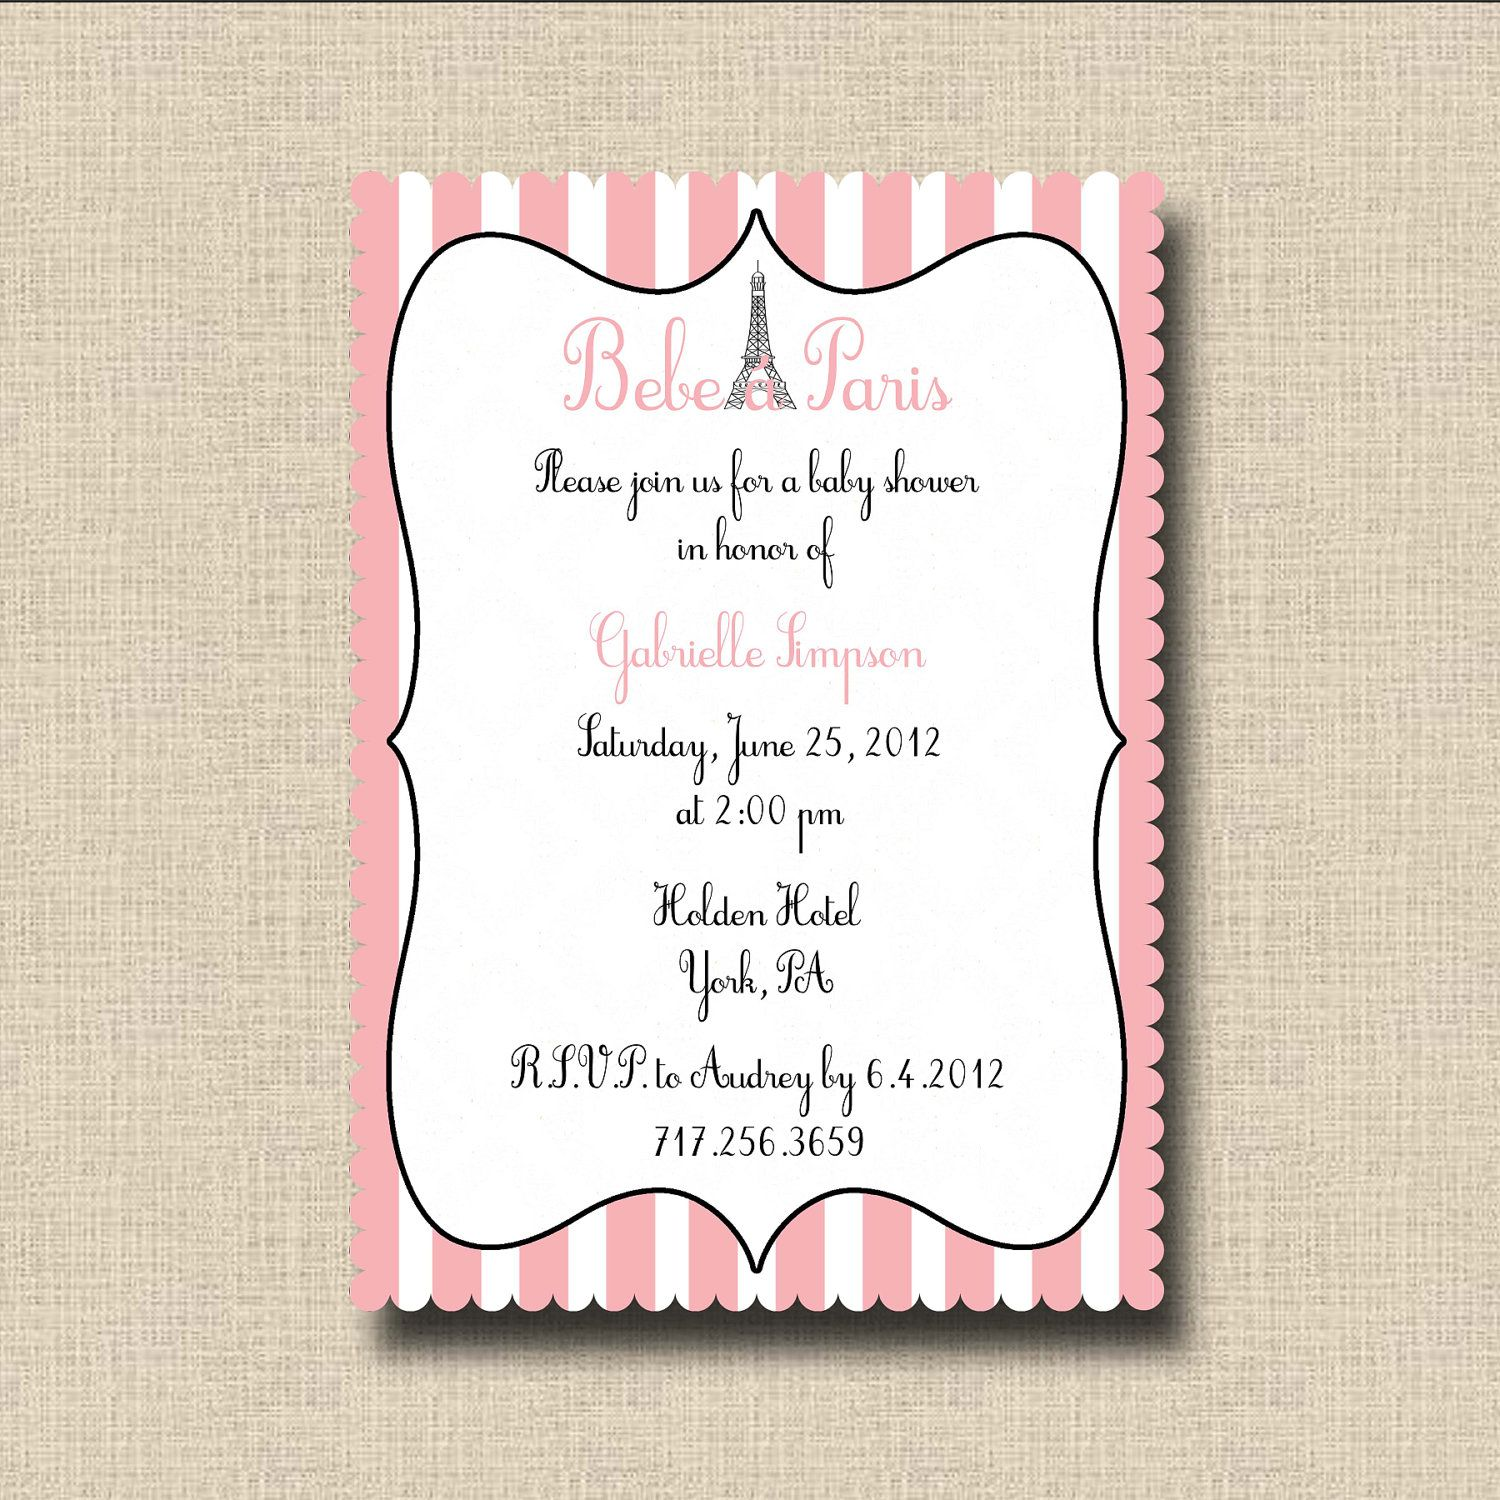 Bebe in Paris Baby Shower Invitation or French Pink Poodle in